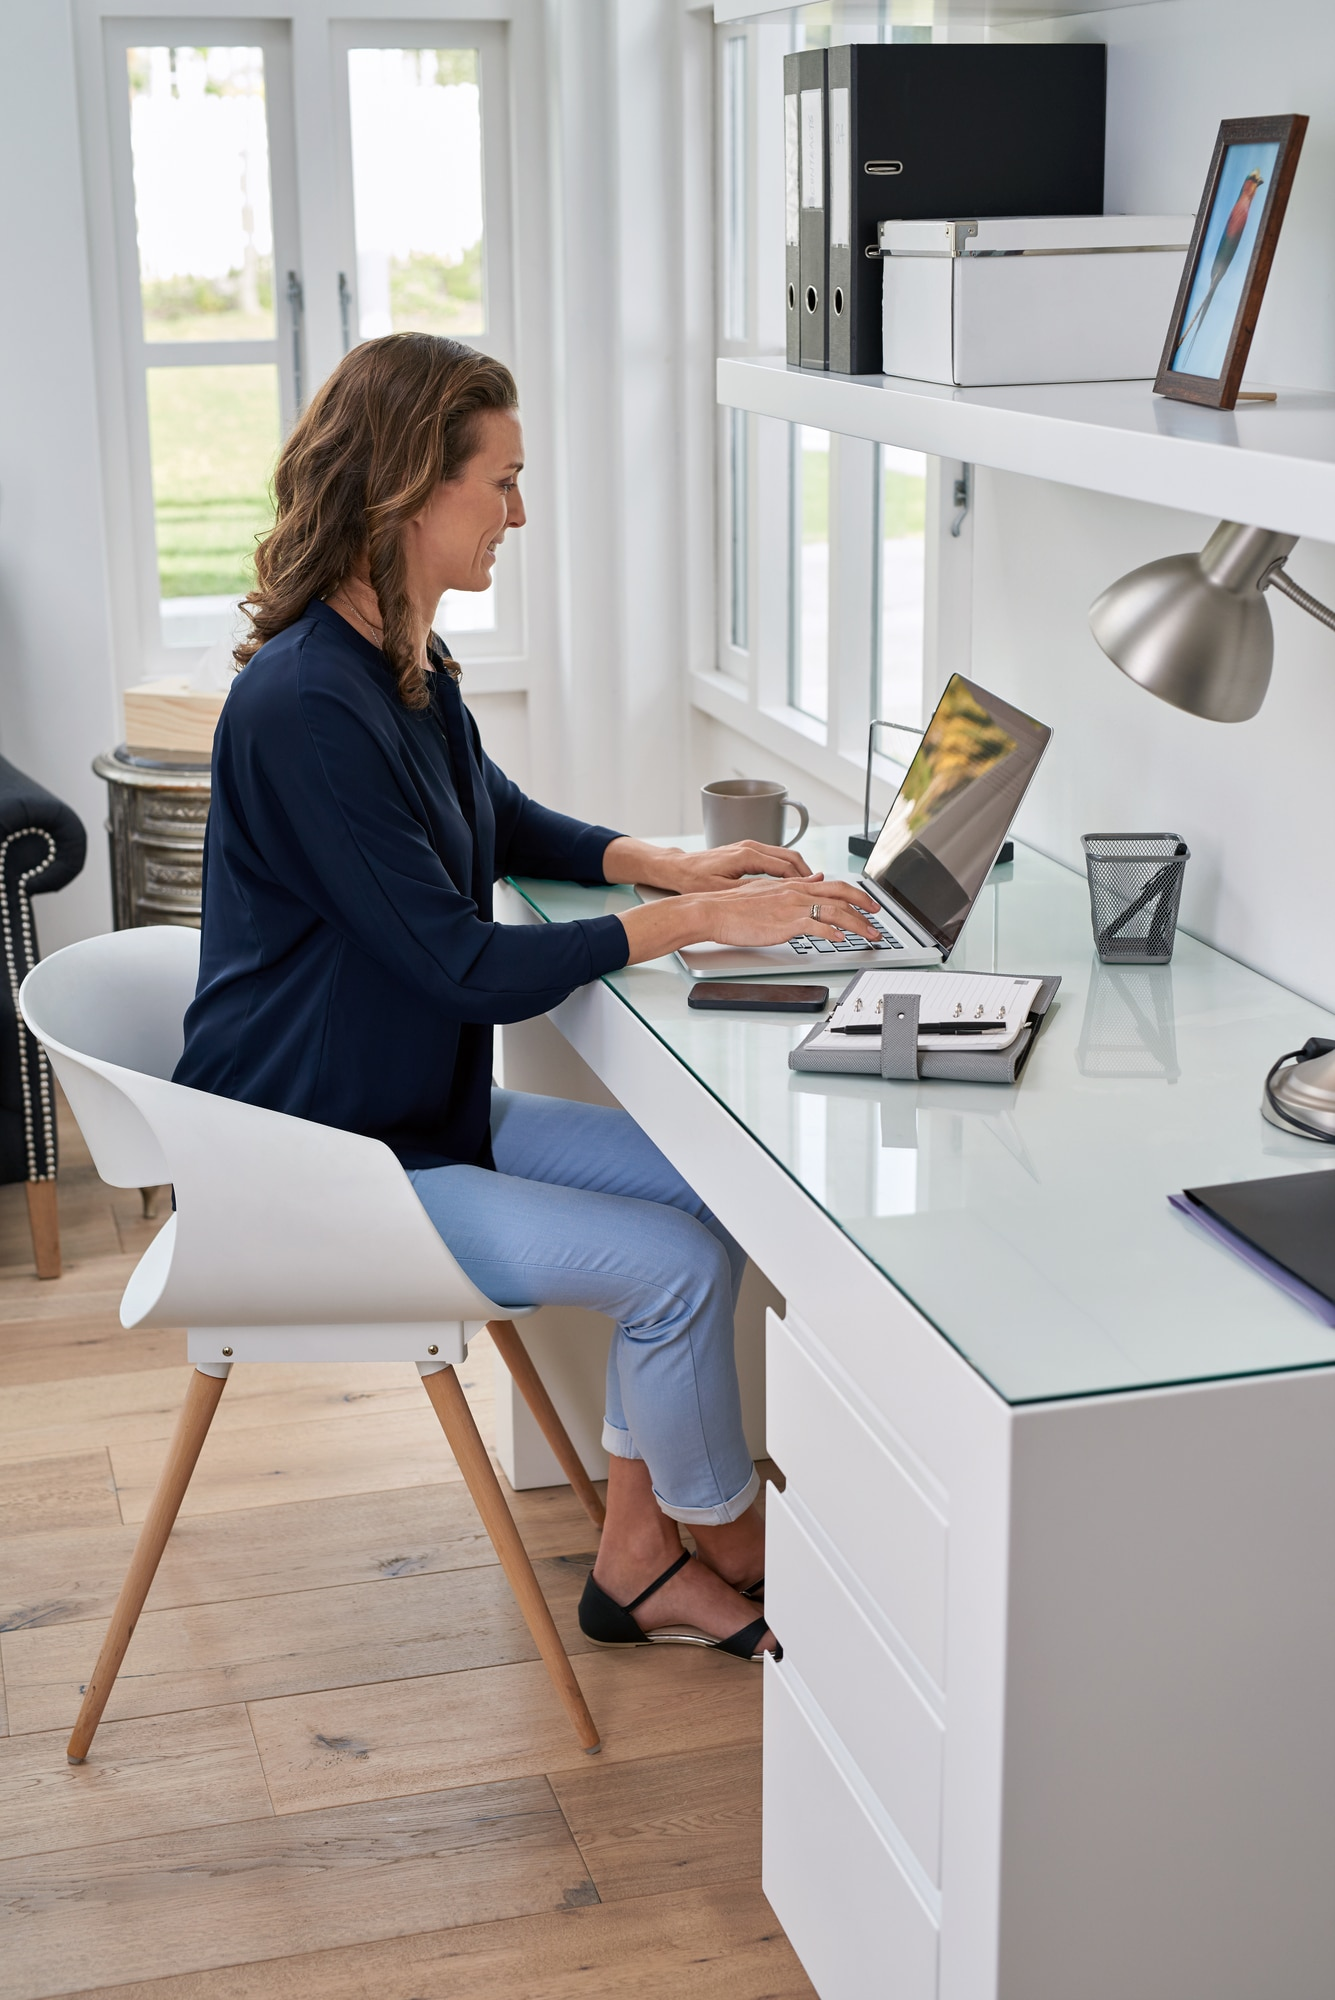 9 Tips to be Self-Employed at Home